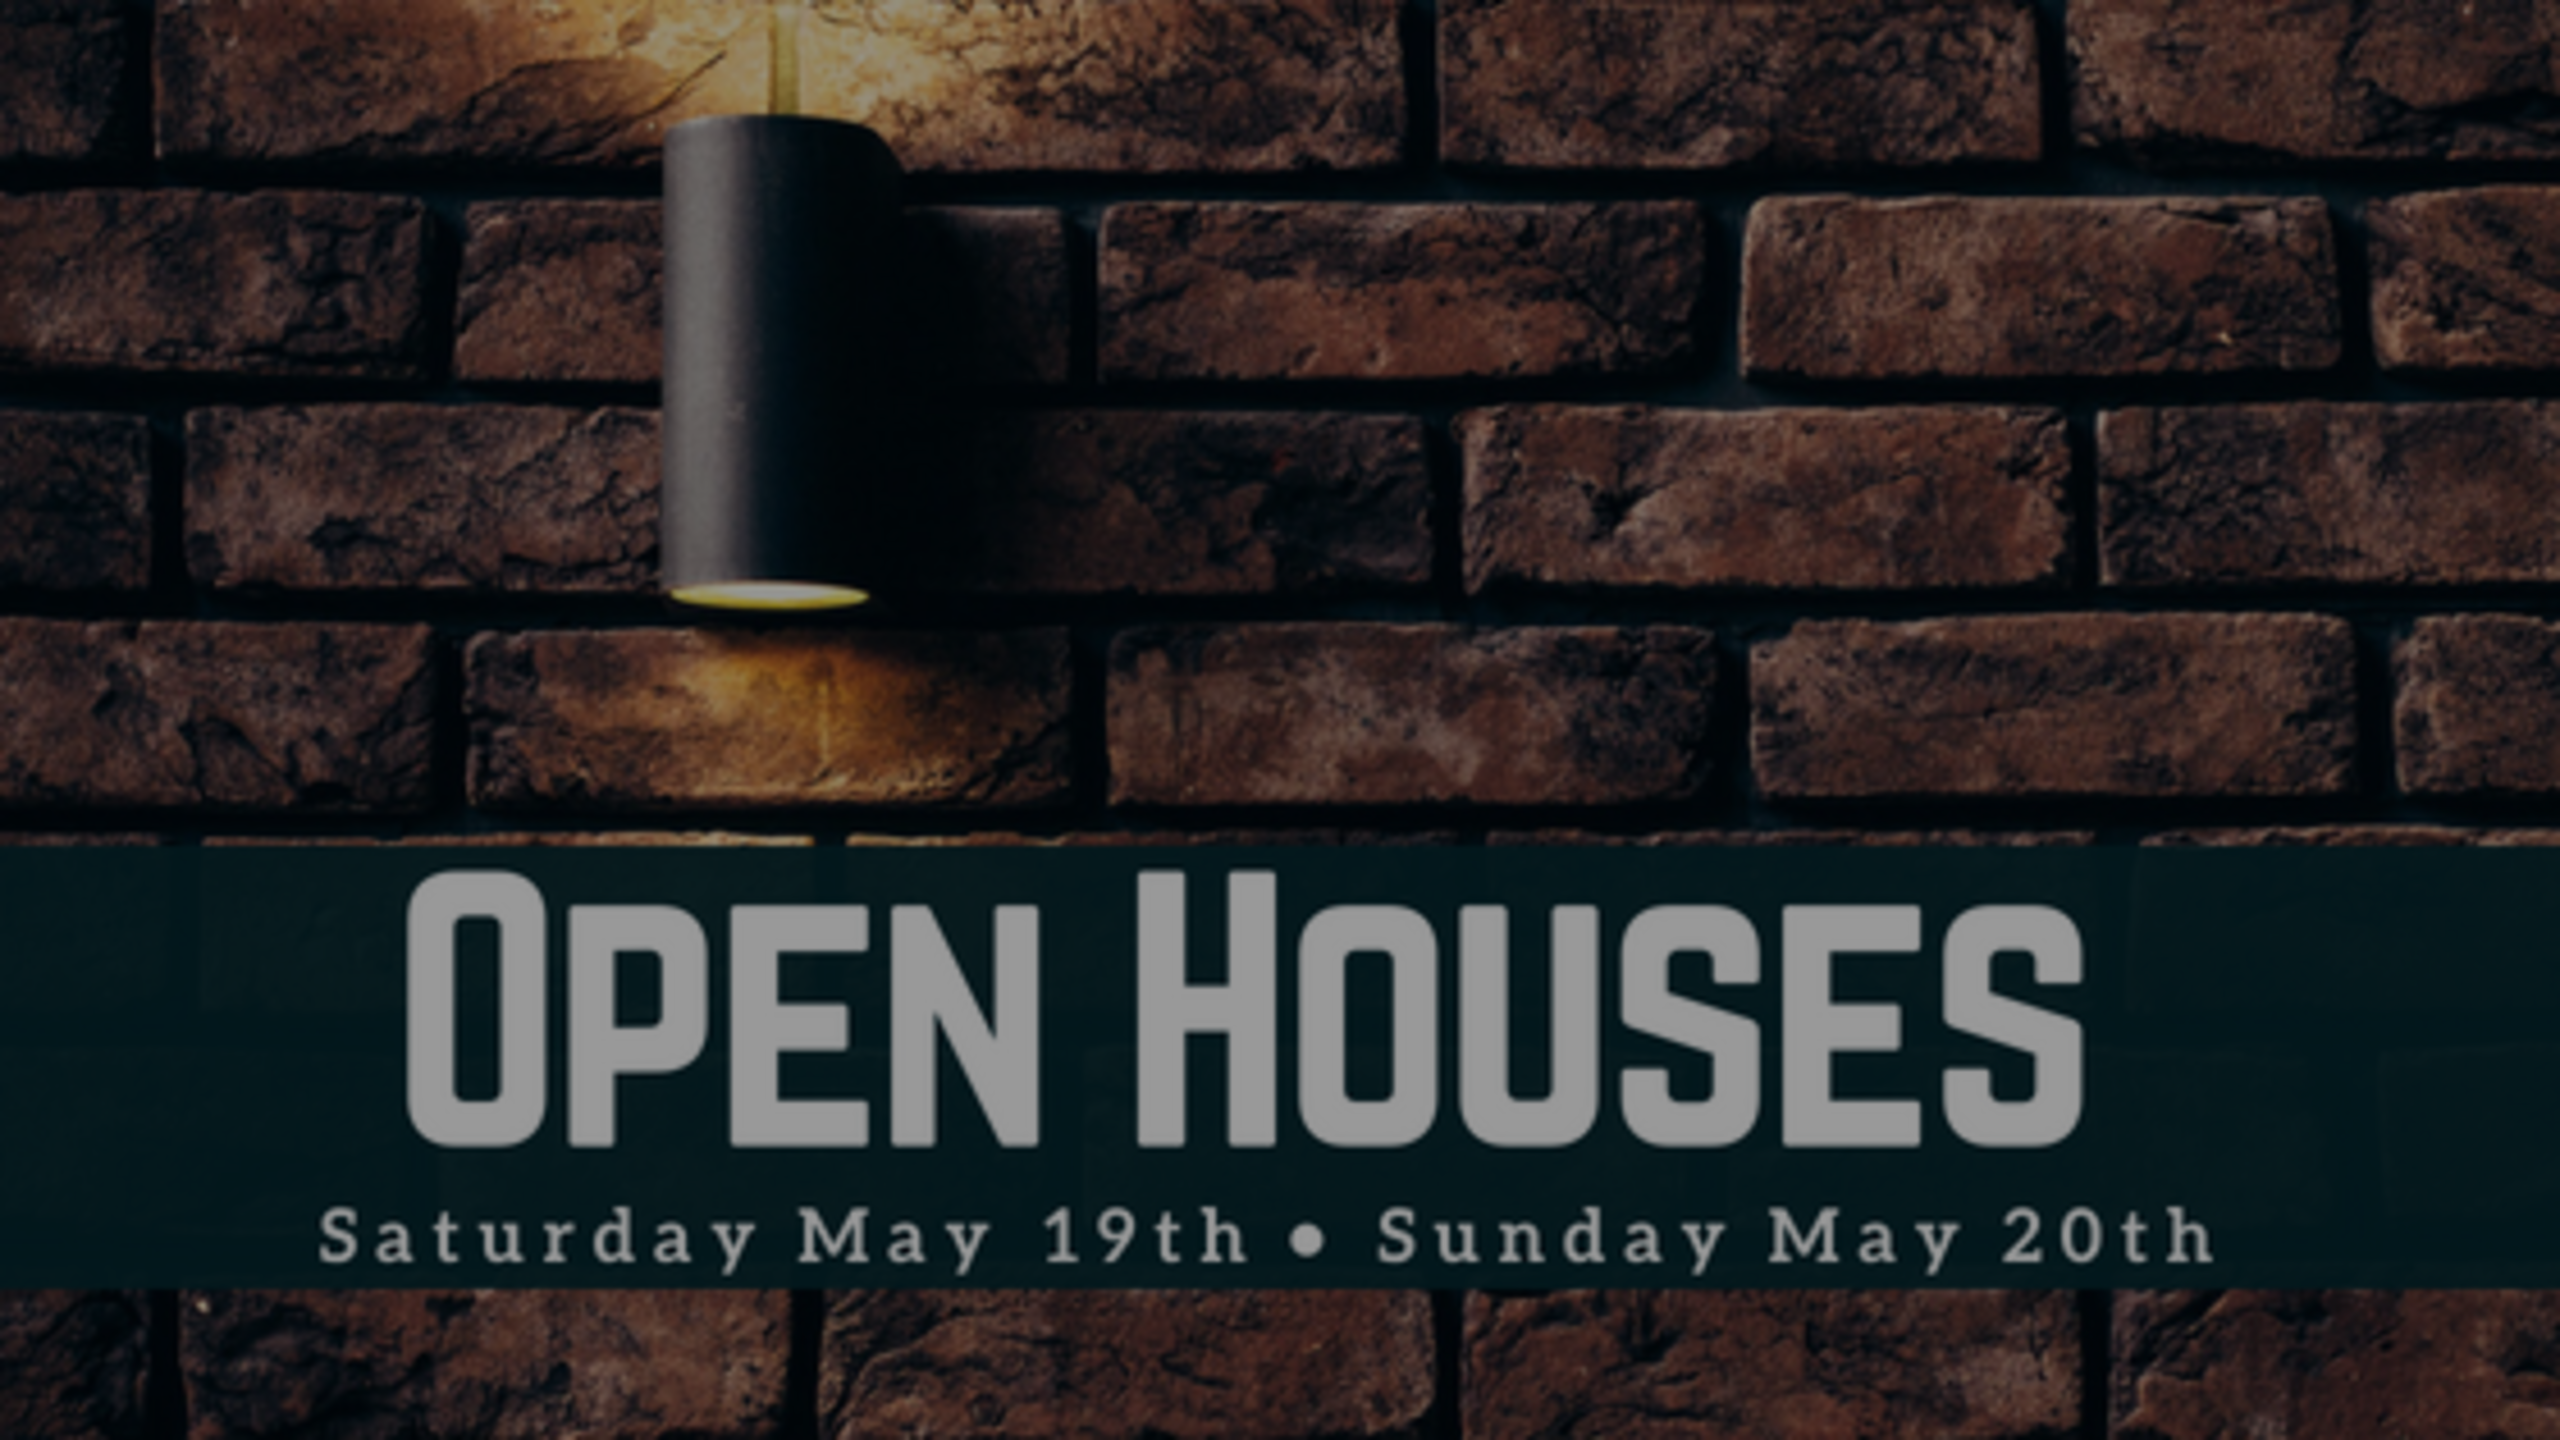 Our Open Houses: Weekend of 5/19 + 5/20